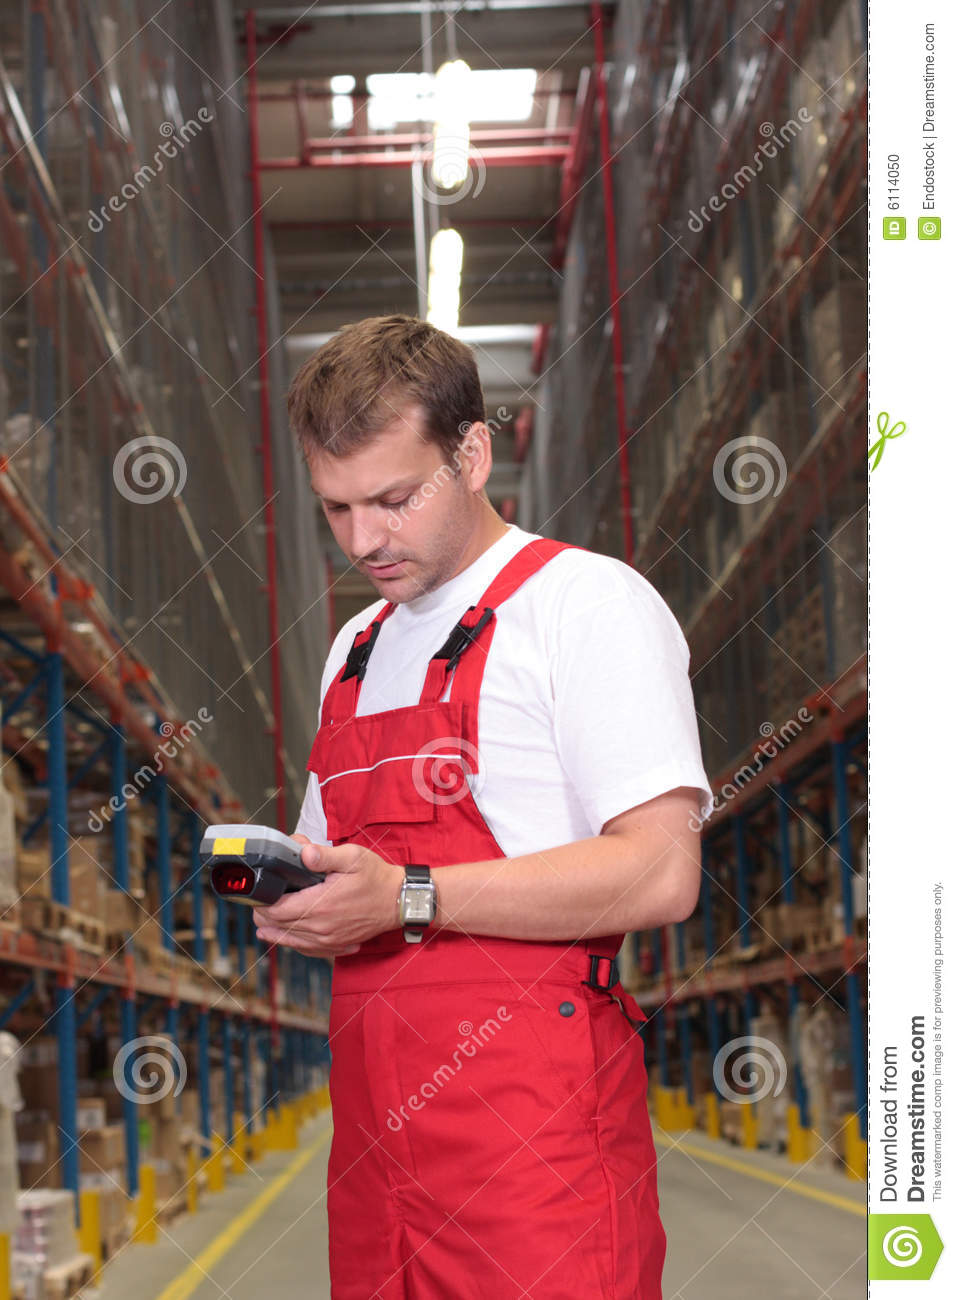 Worker with inventory device